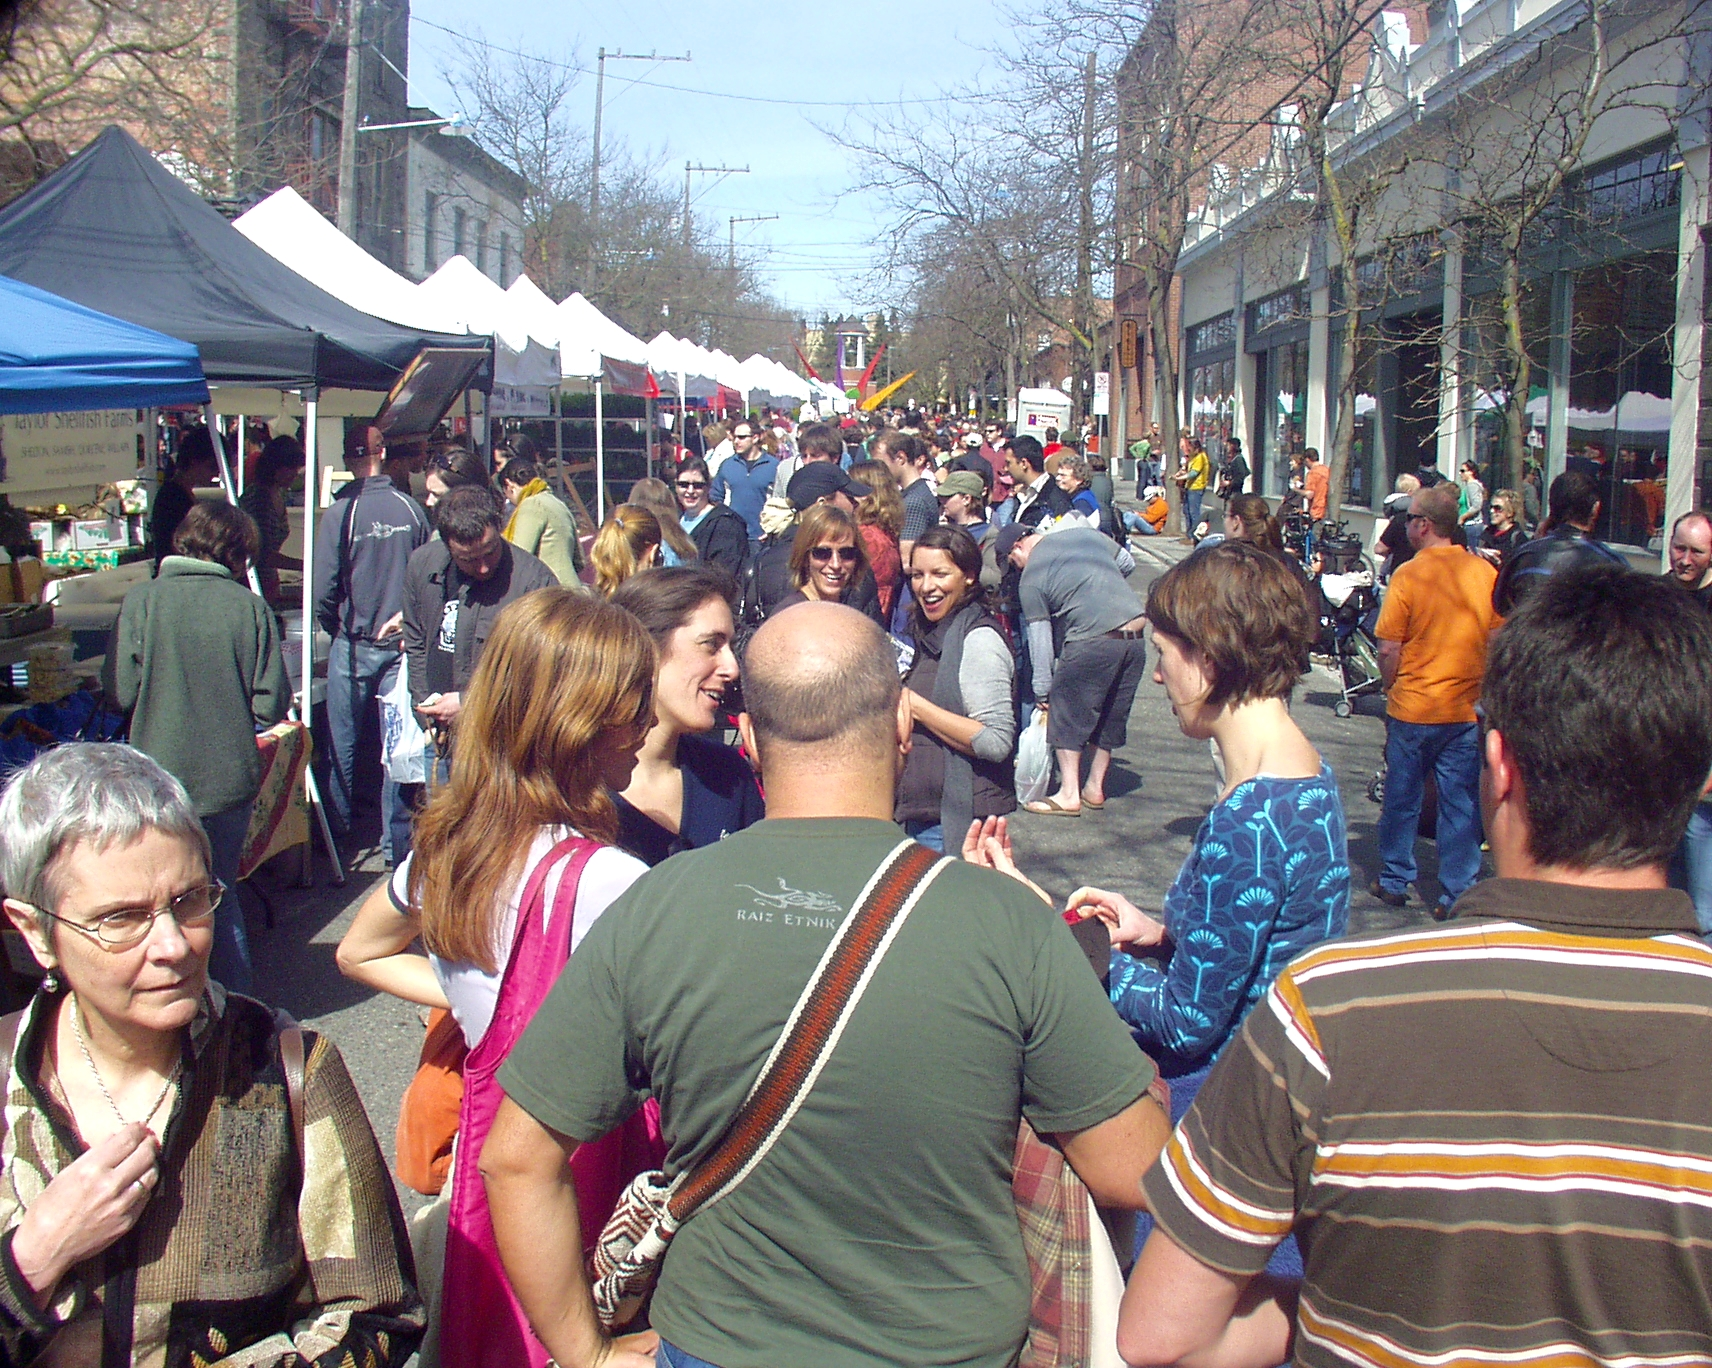 Ballardites crowded the Market by the thousands to welcome, finally, spring. Photo copyright 2009 by Zachary D. Lyons.